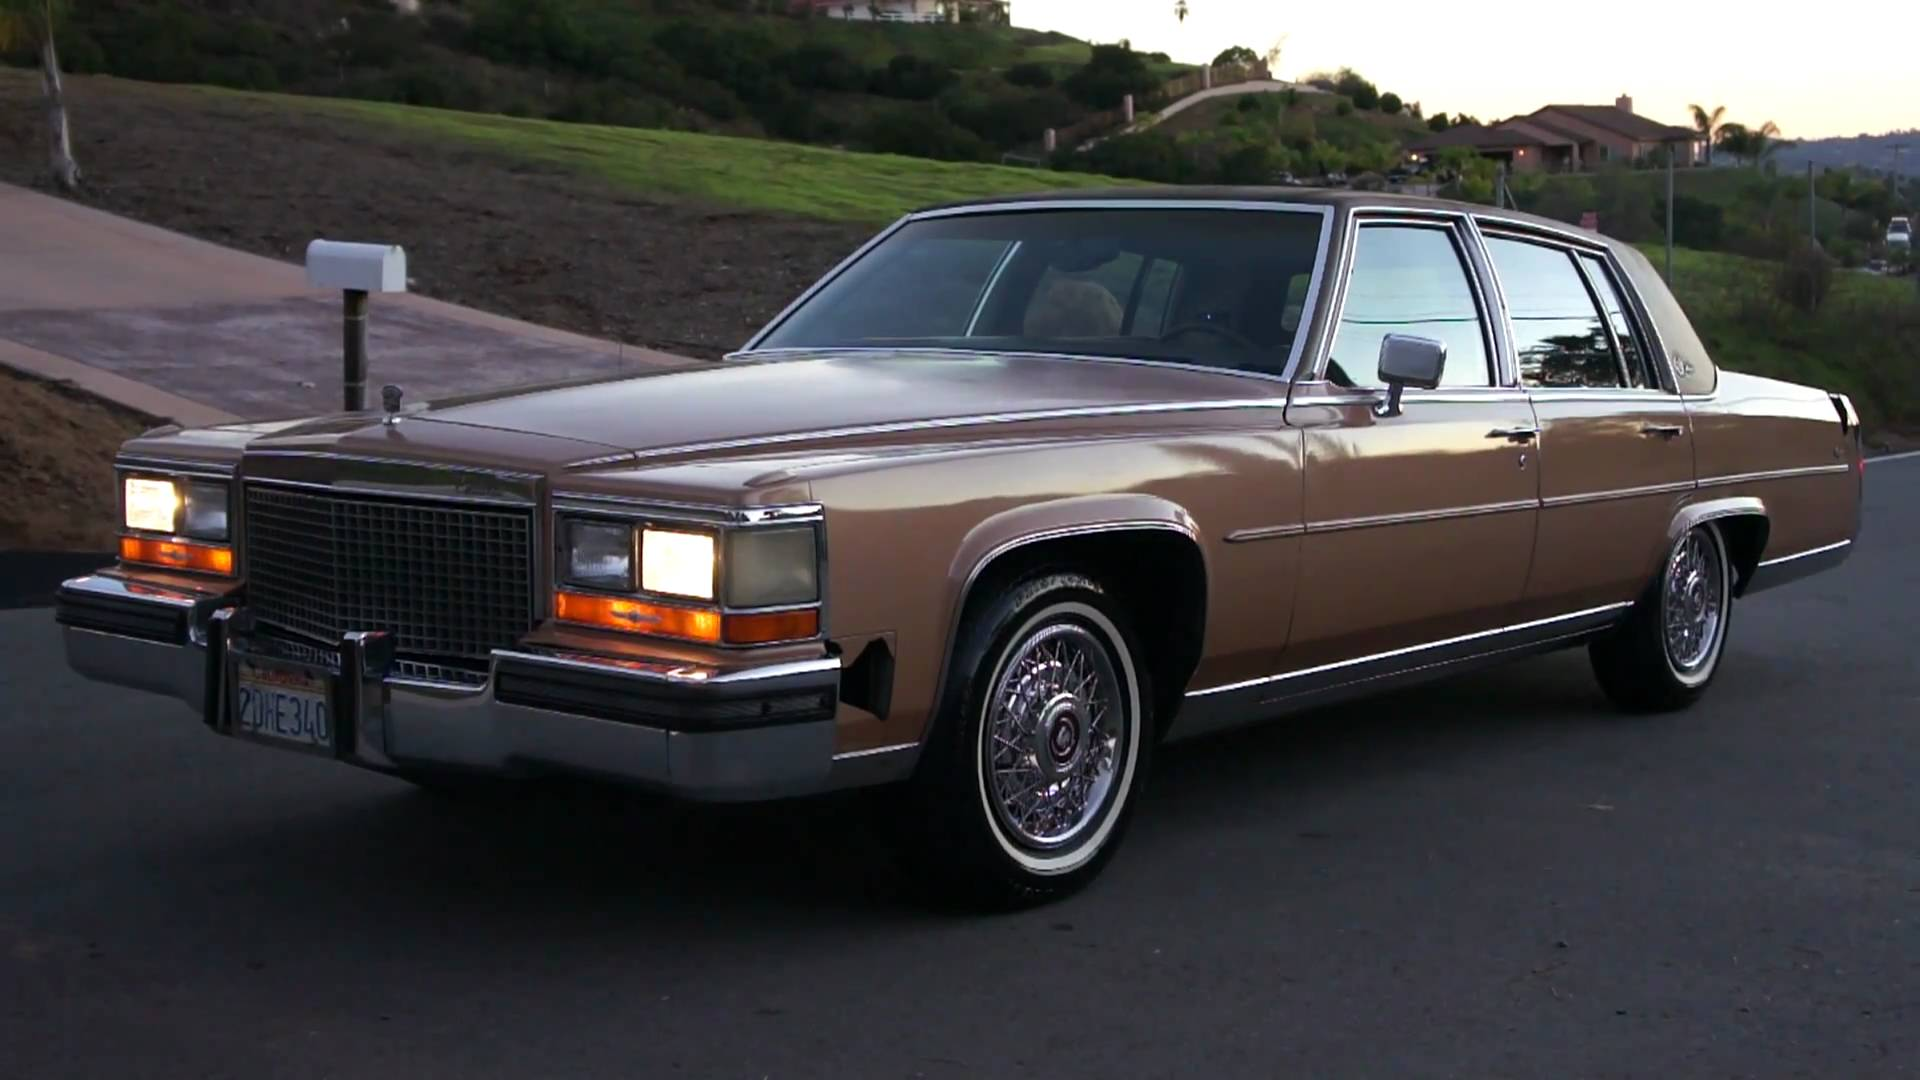 1987 Cadillac Brougham Information And Photos Momentcar